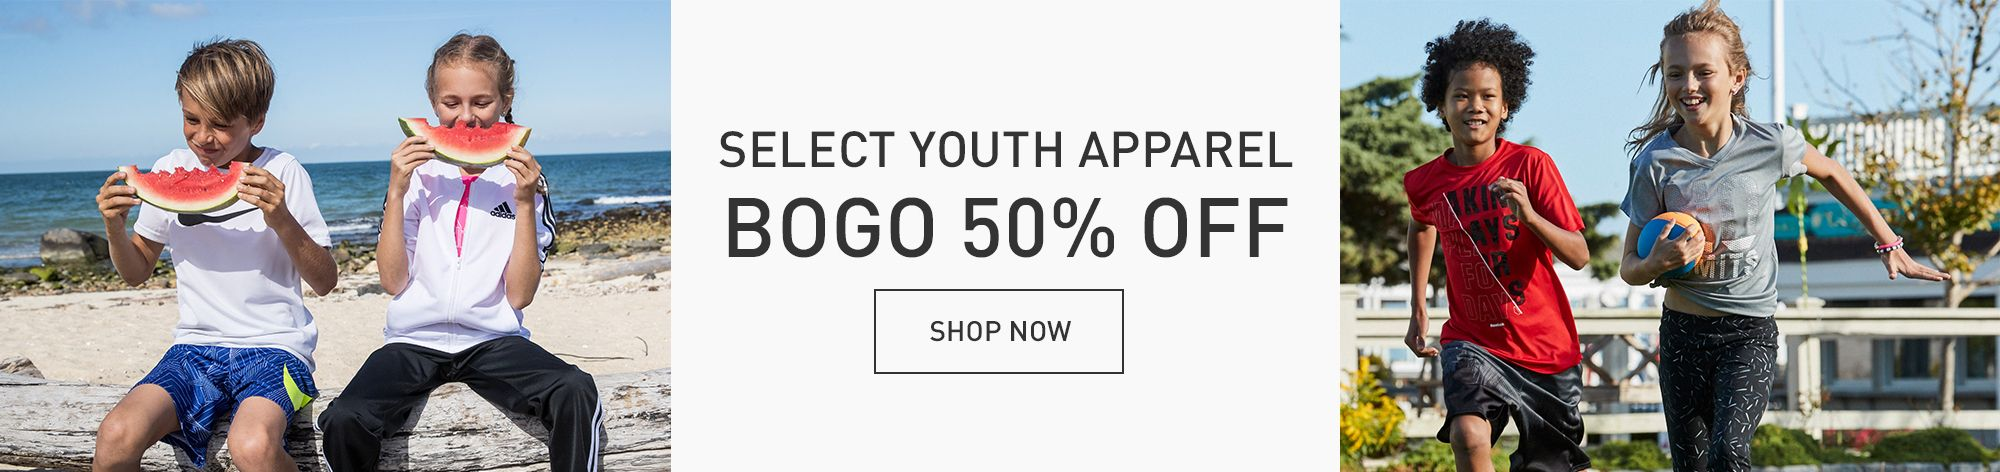 BOGO 50% OFF Select Youth Apparel